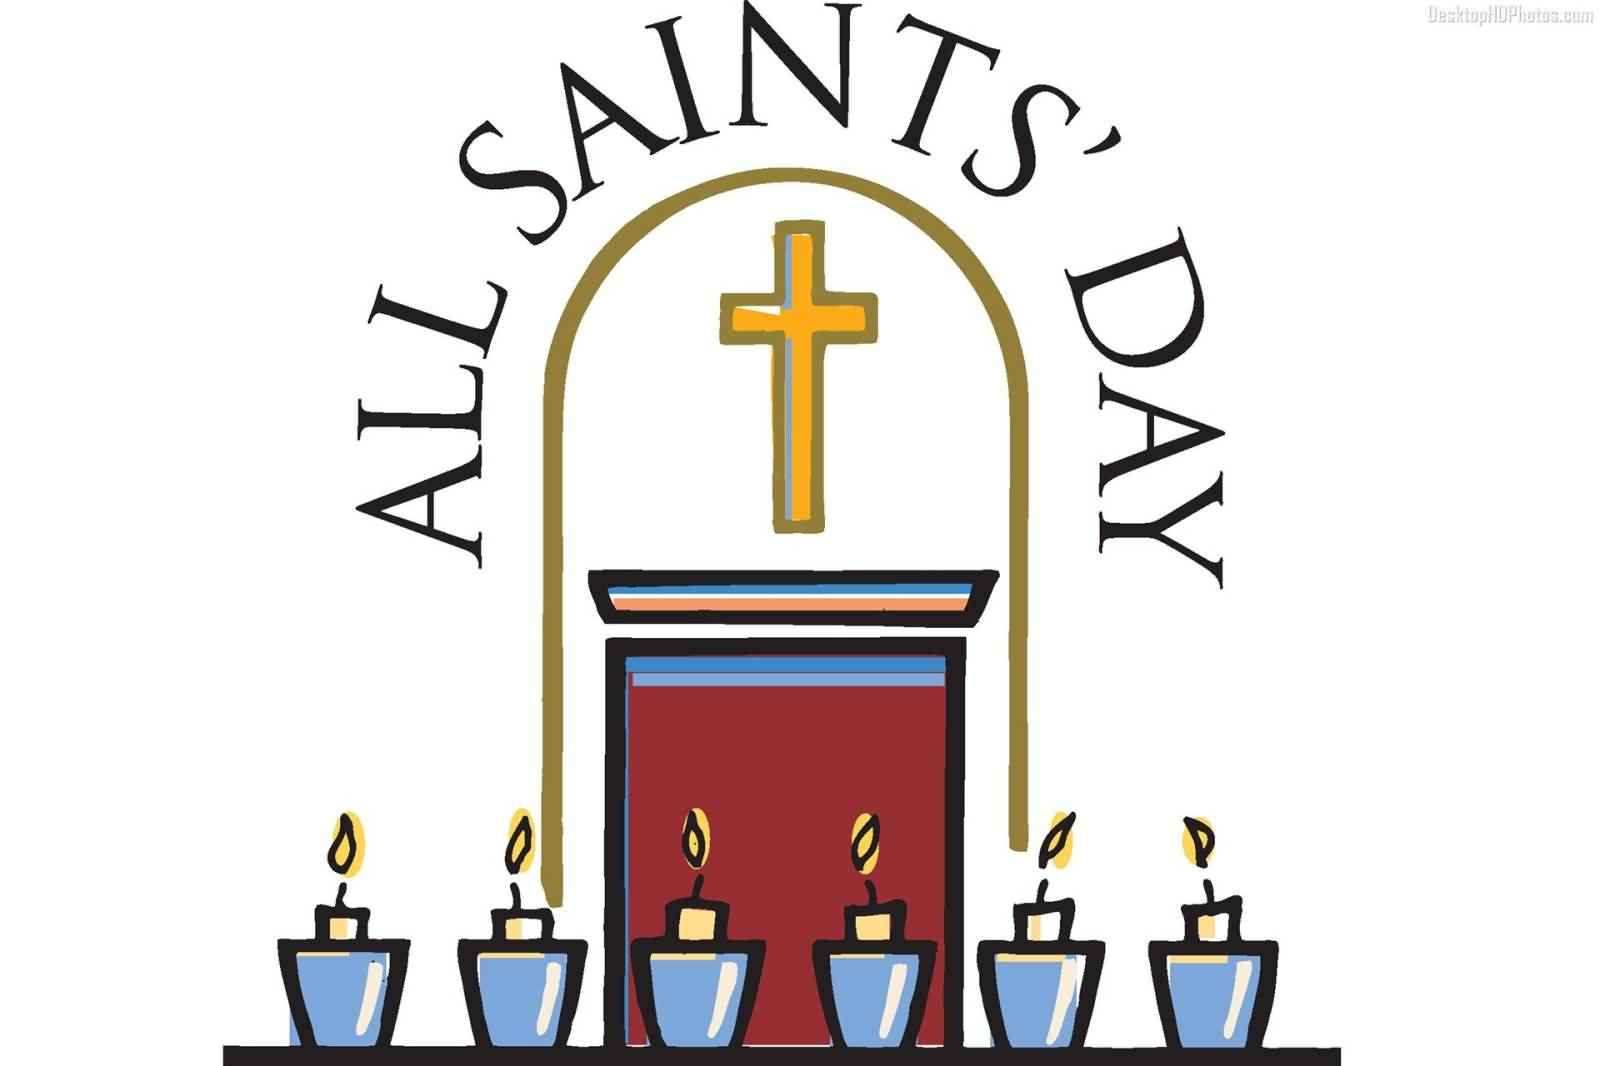 https://www.askideas.com/media/64/All-Saints-Day-Greeting-Ecard.jpg